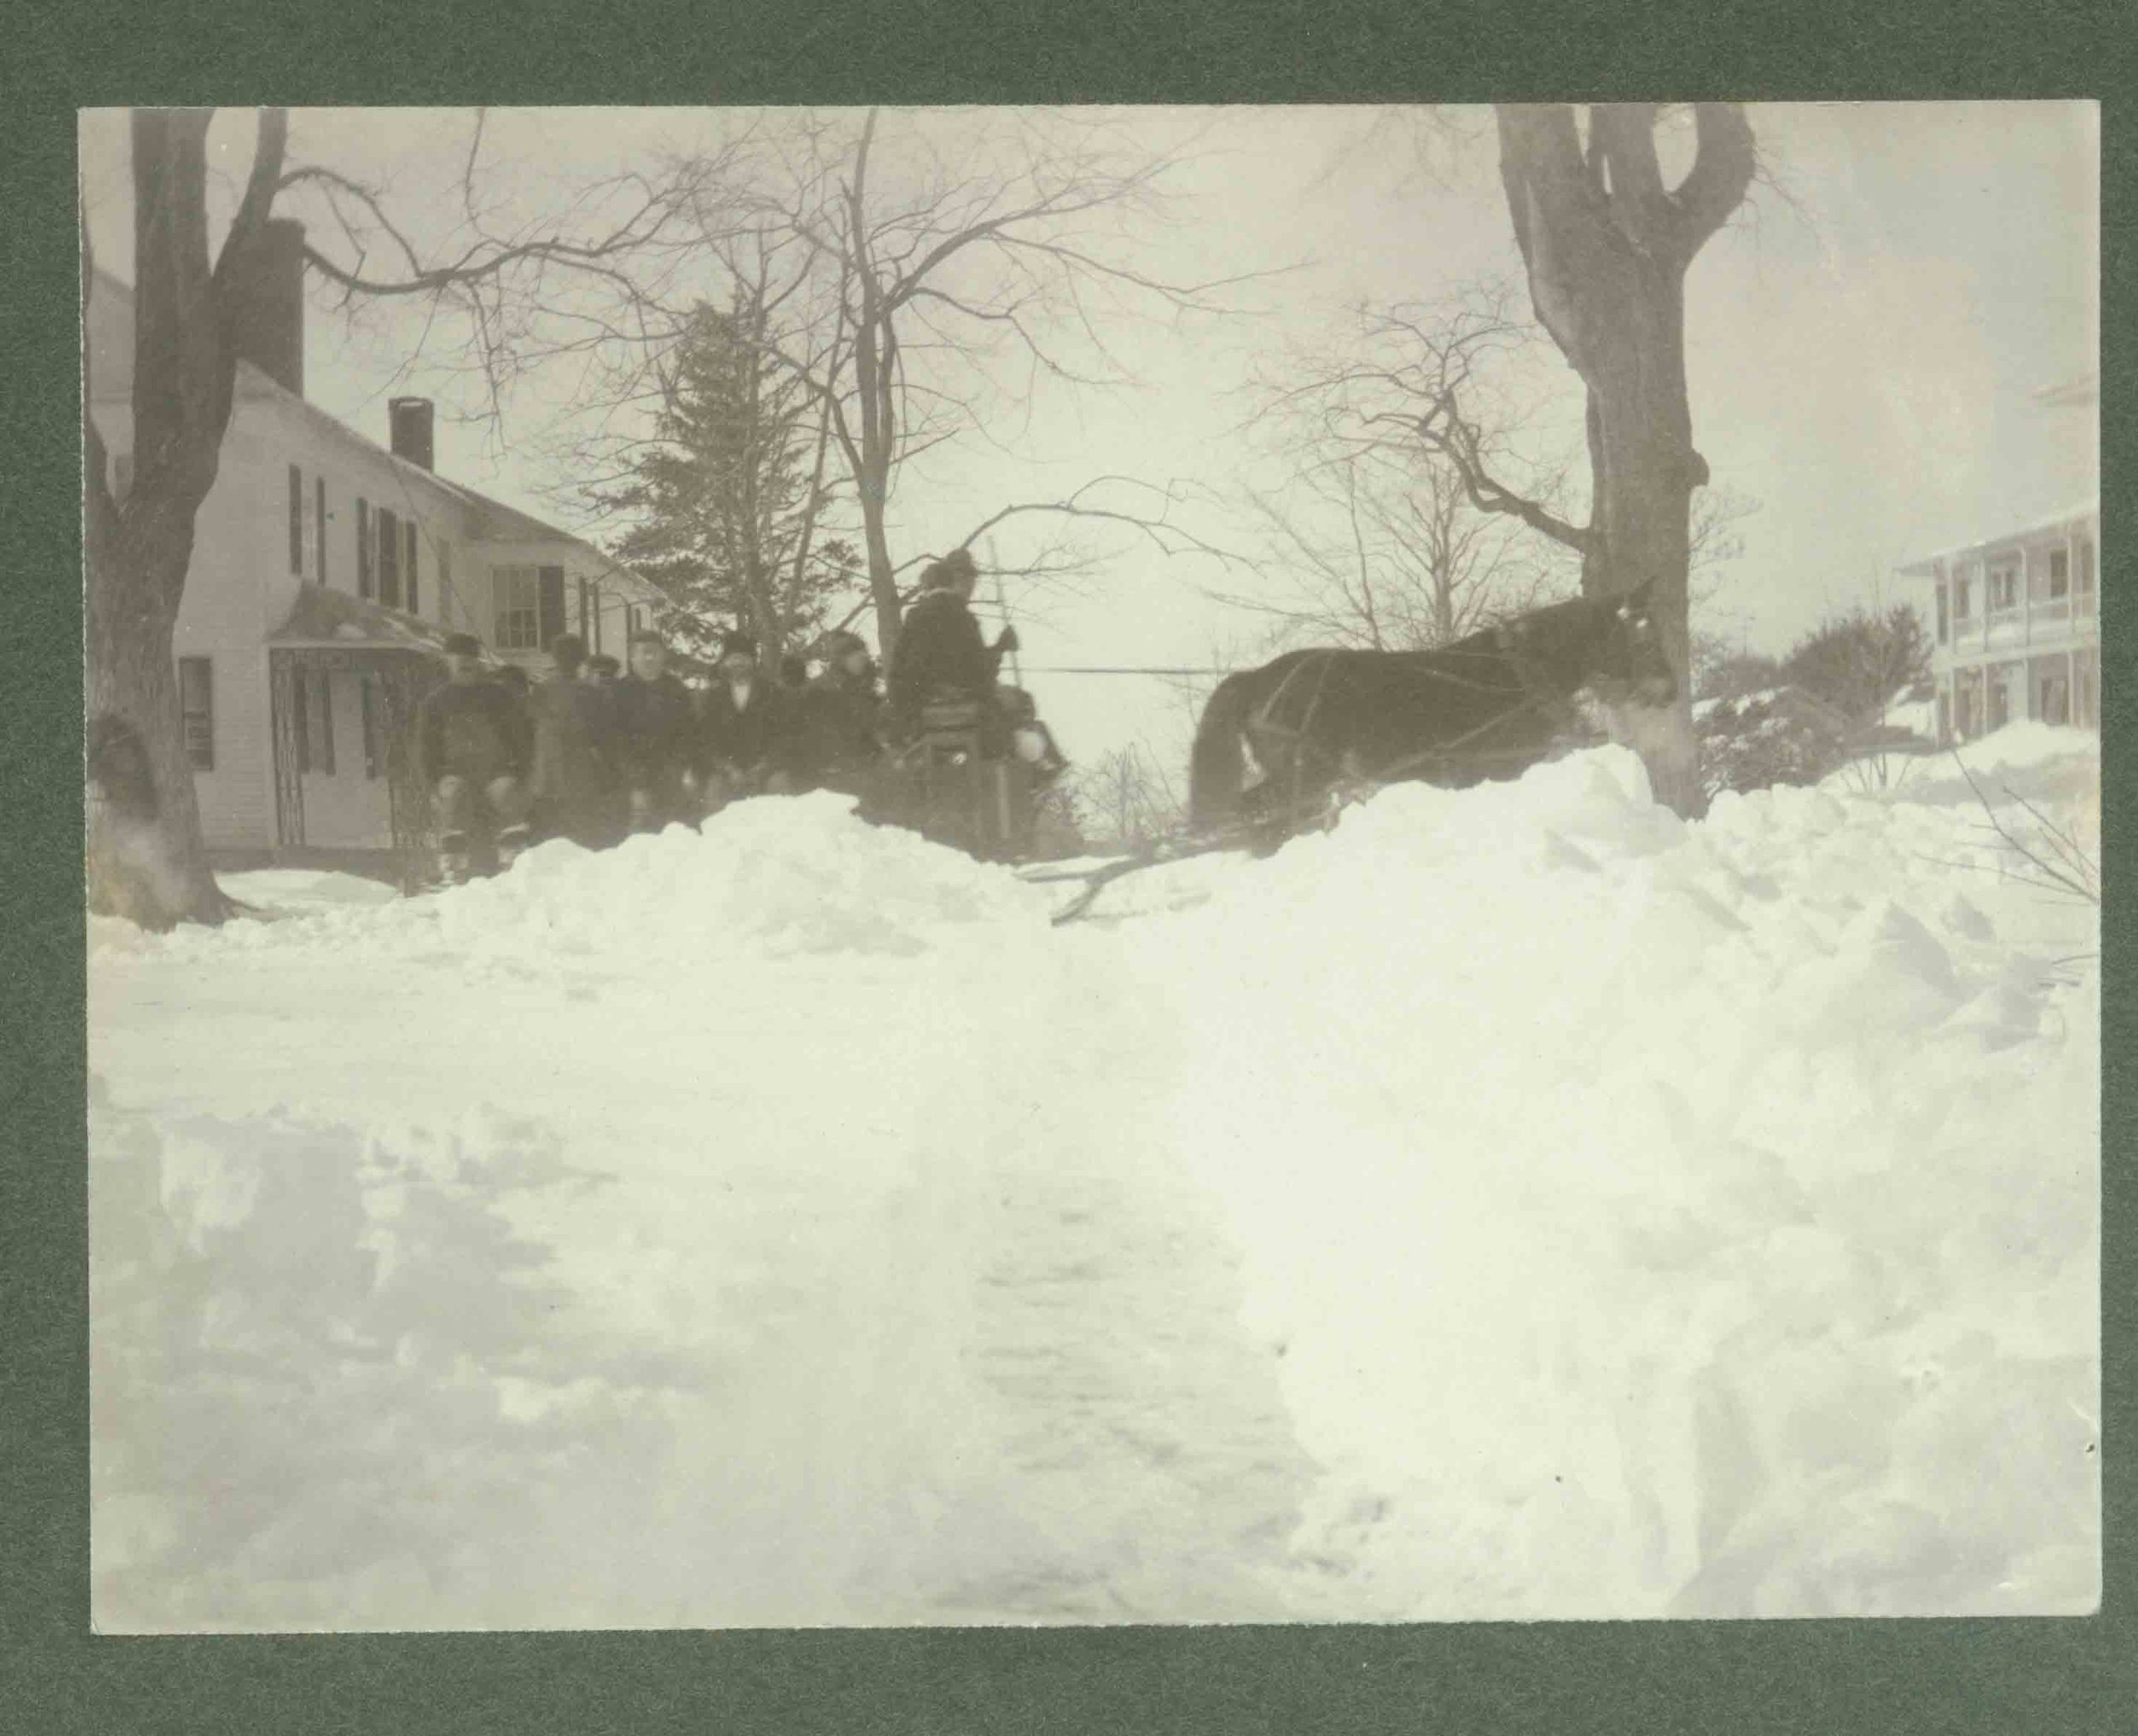 South Street, Litchfield, 1898.  Collection of the Litchfield Historical Society, Litchfield, Connecticut